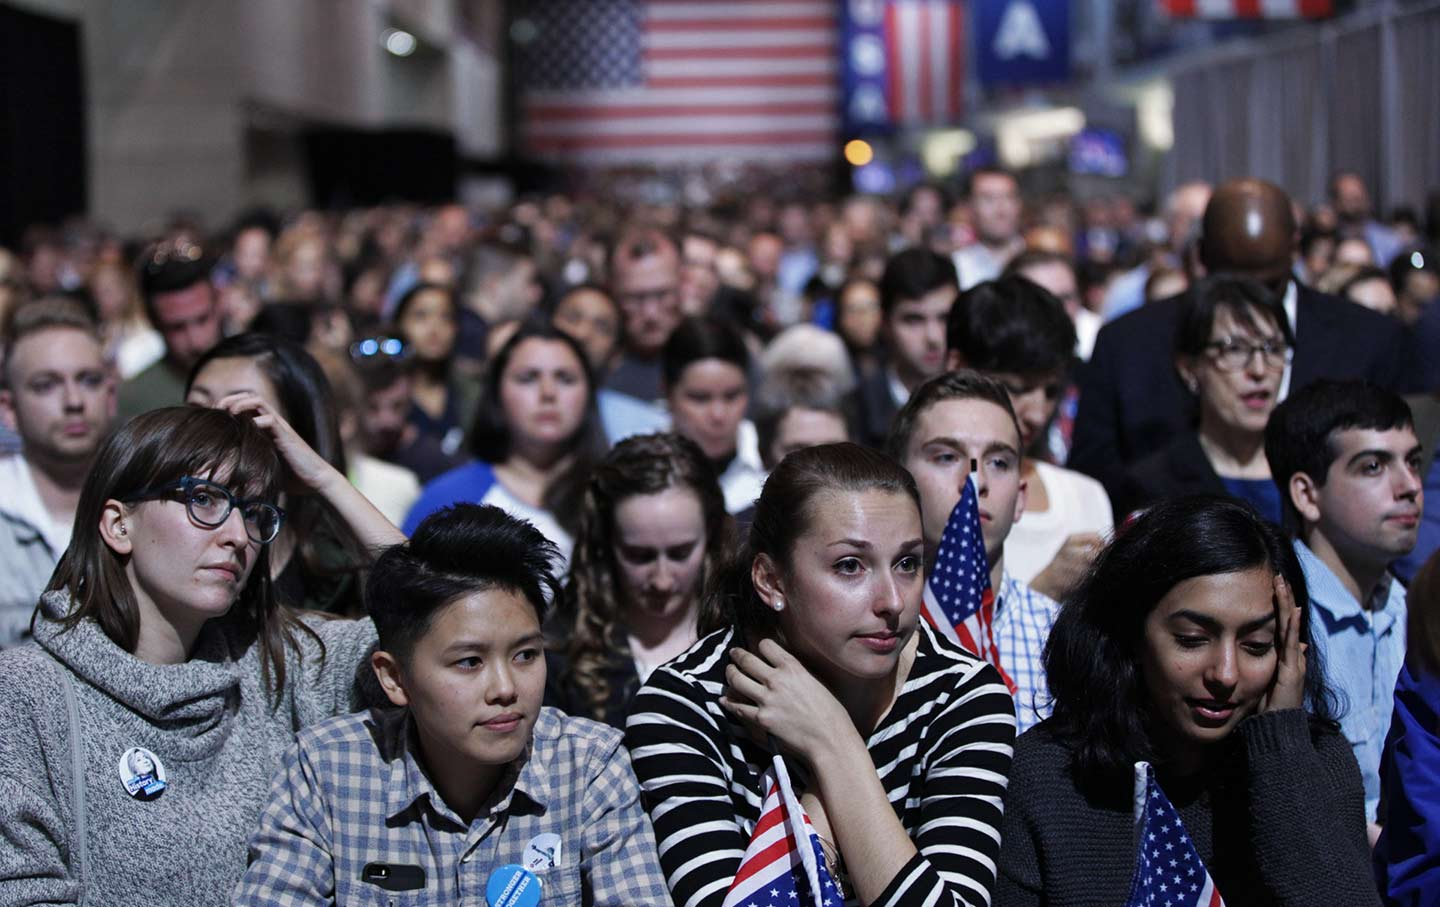 Supporters of the Democratic candidate Hillary Clinton at the Jacob K. Javits Convention Center in New York on November 9, 2016.